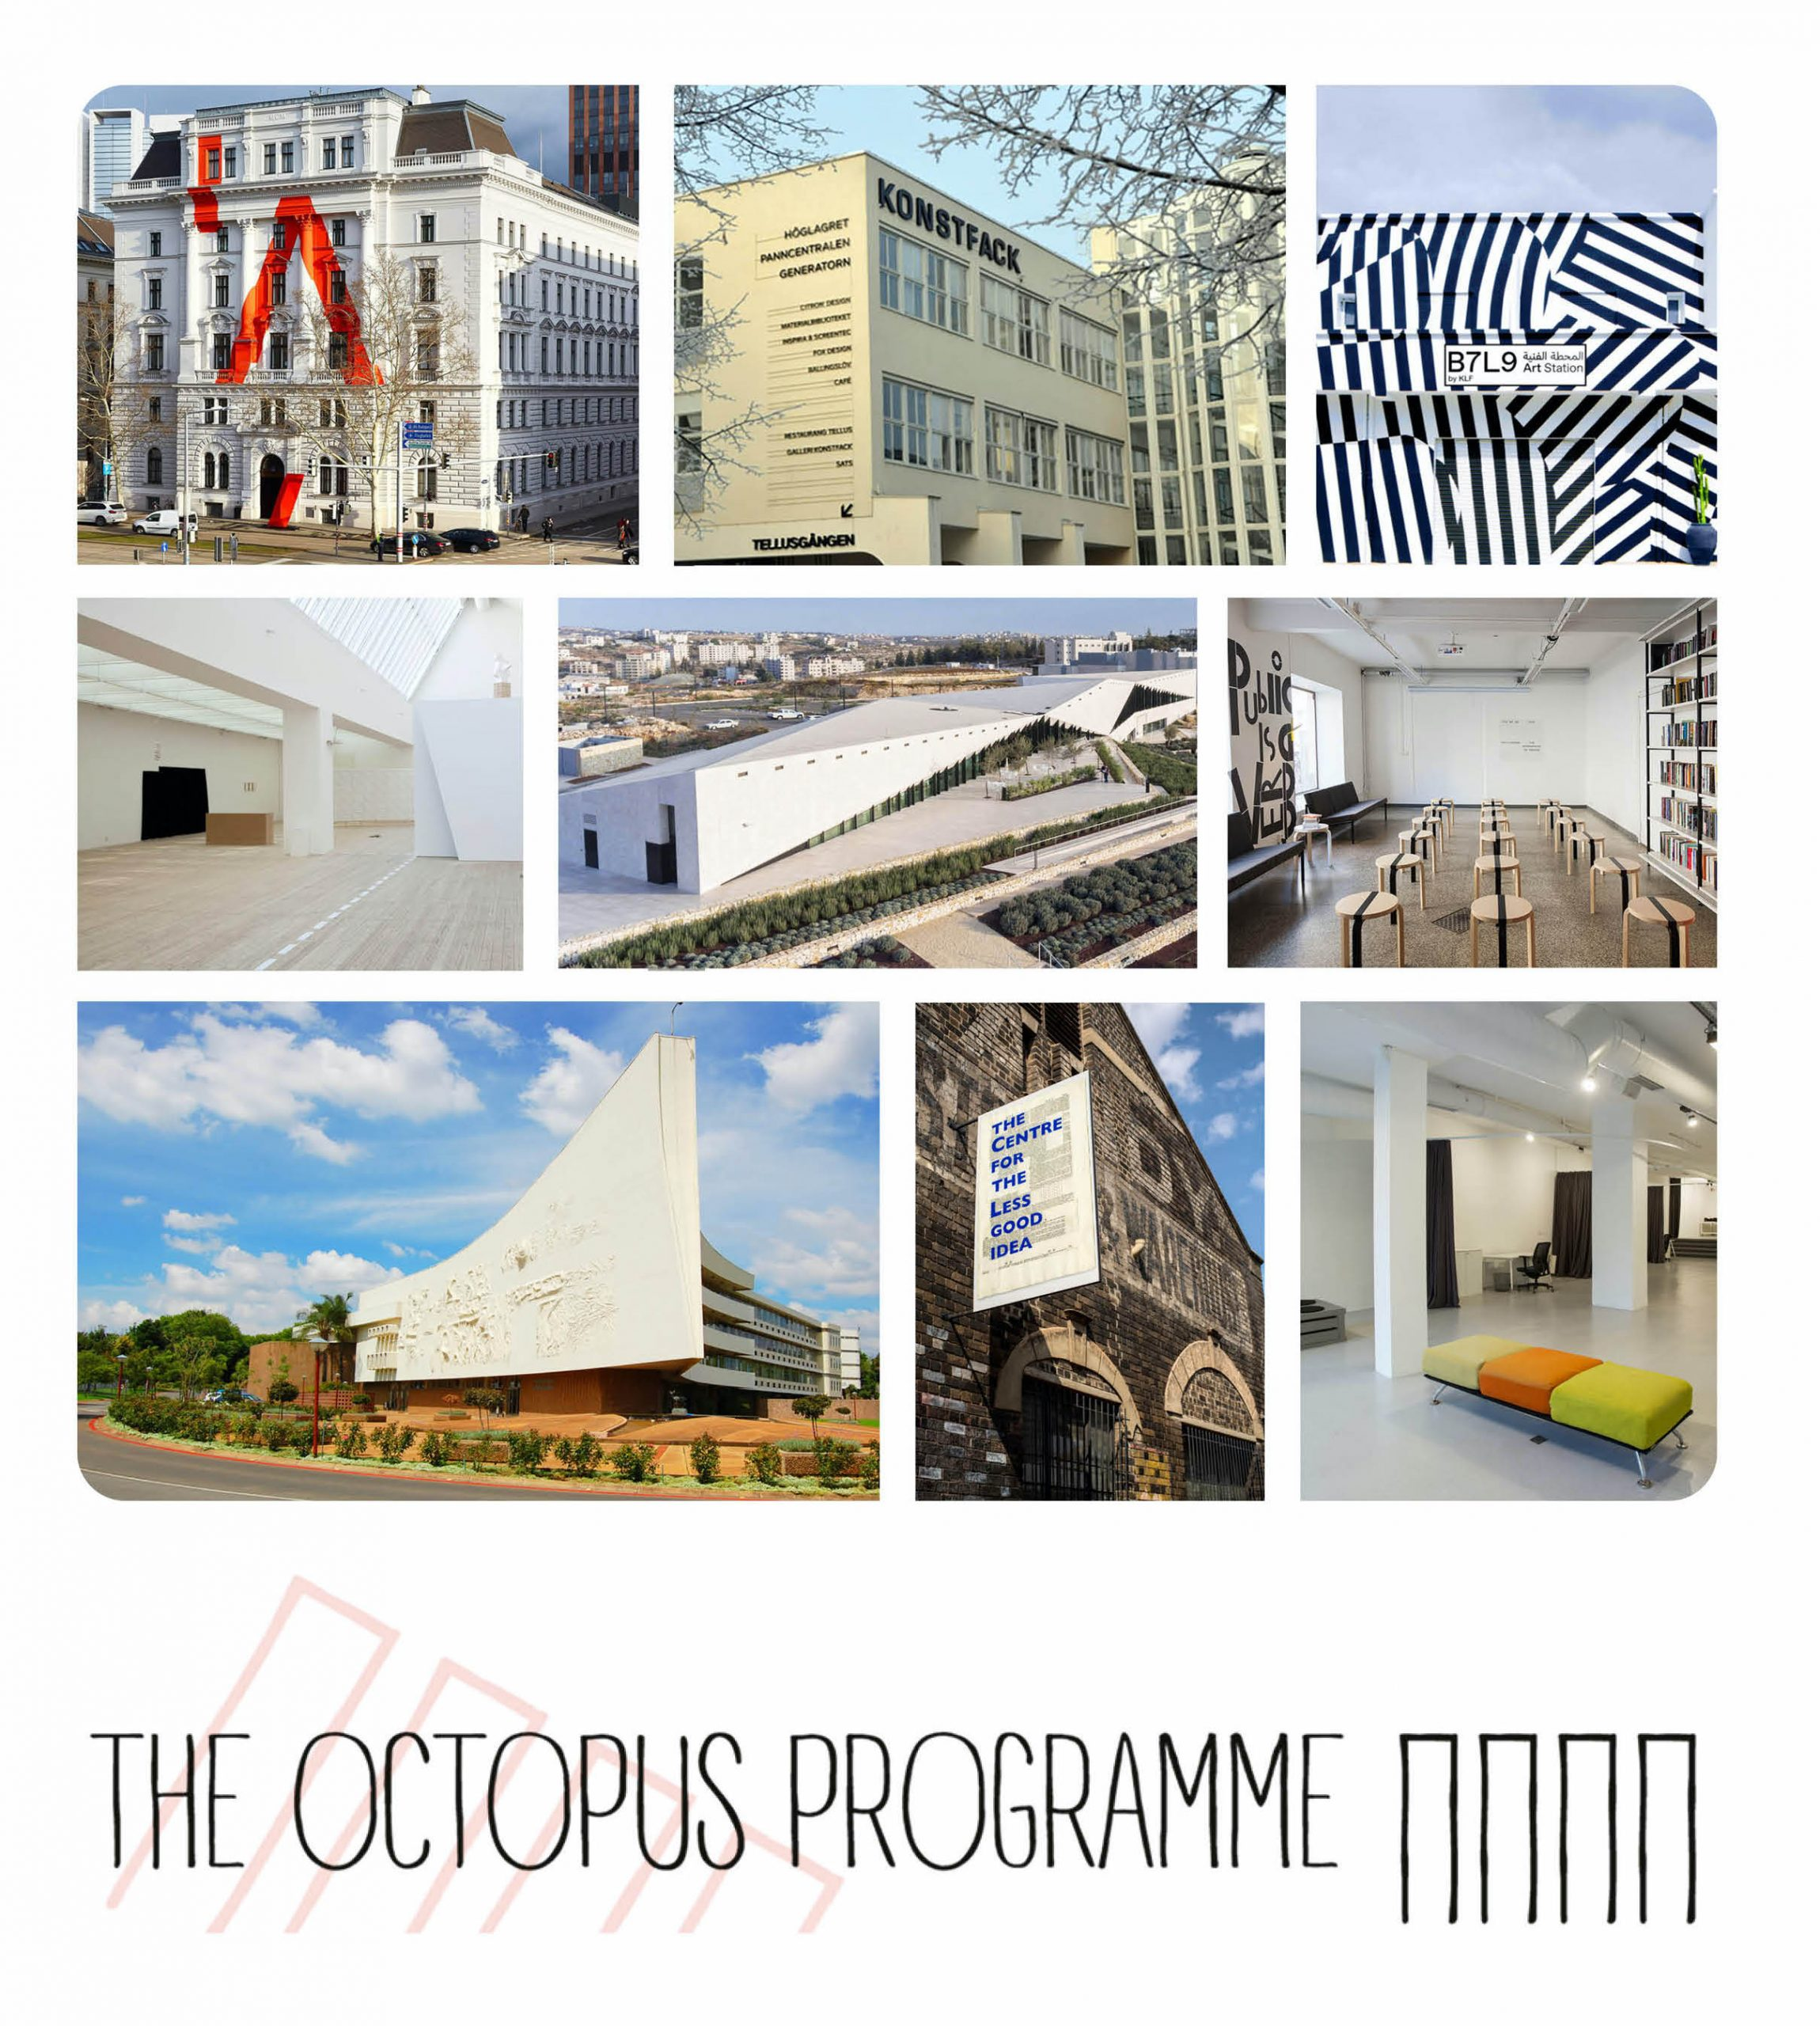 Octopus Programme Open Call for 2021/2022